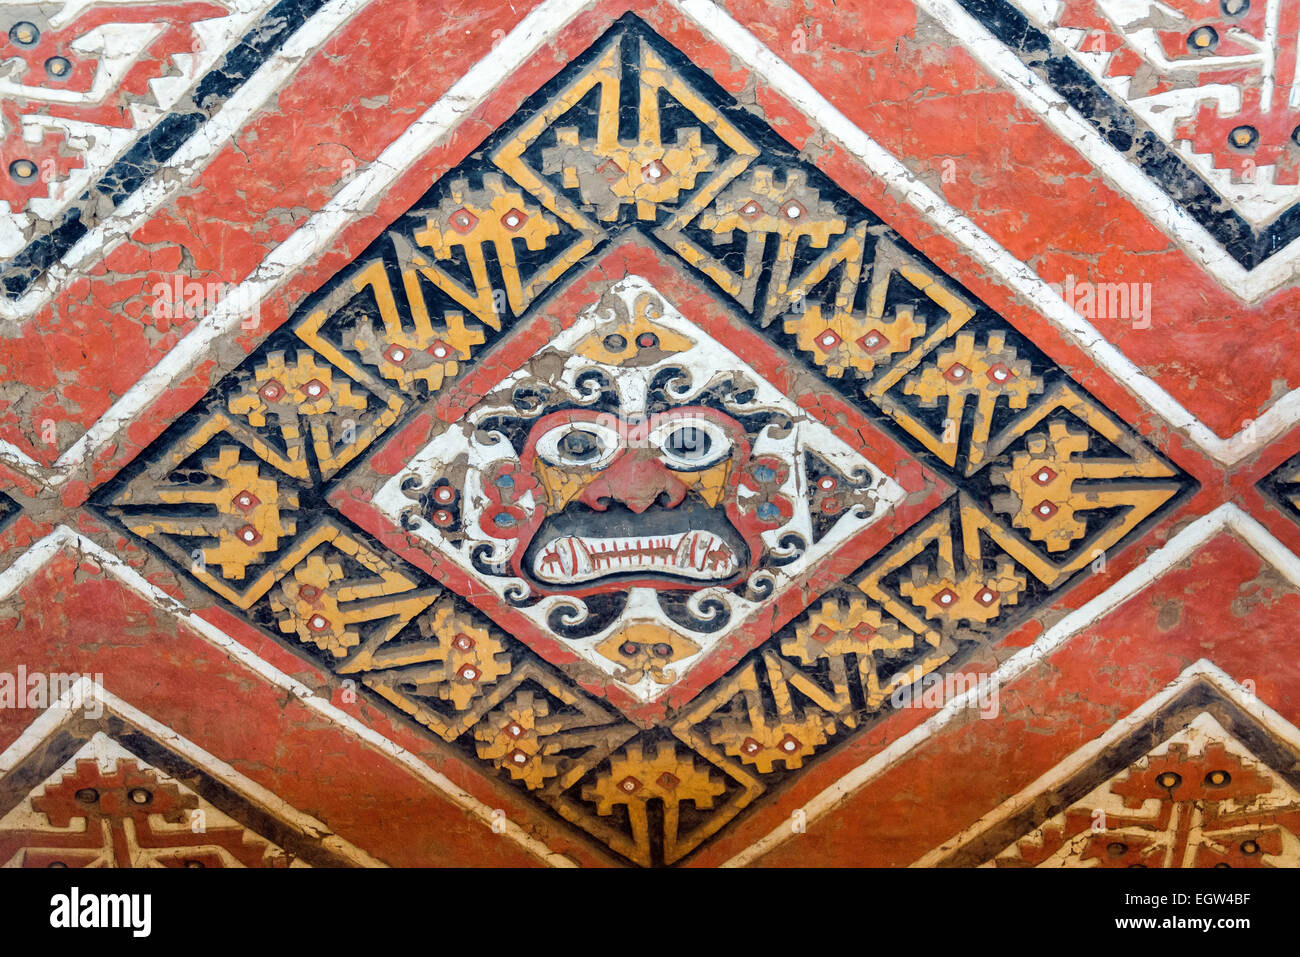 Details of an ancient fresco in Huaca de la Luna in Trujillo, Peru - Stock Image